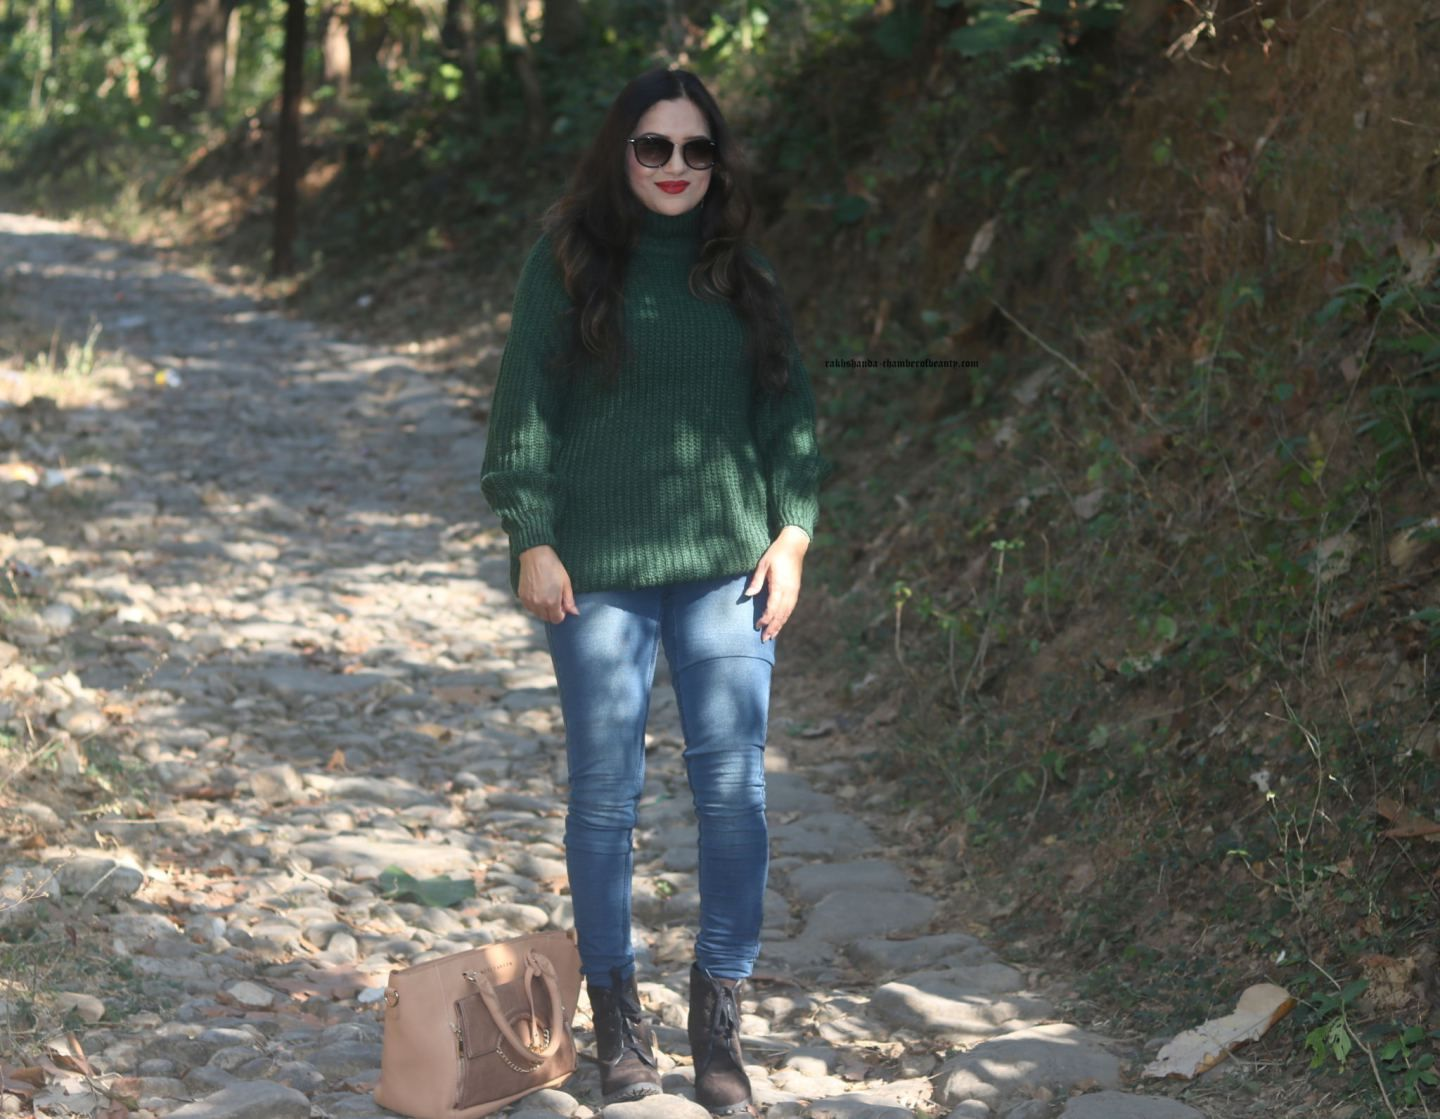 - http://bit.ly/2mdnJib  #lifestyle #fashion #ootd #fashionblogger #lifestyleblogger #indianfashionblogger #howtodressforwinter My New Year Goals and Resolutions